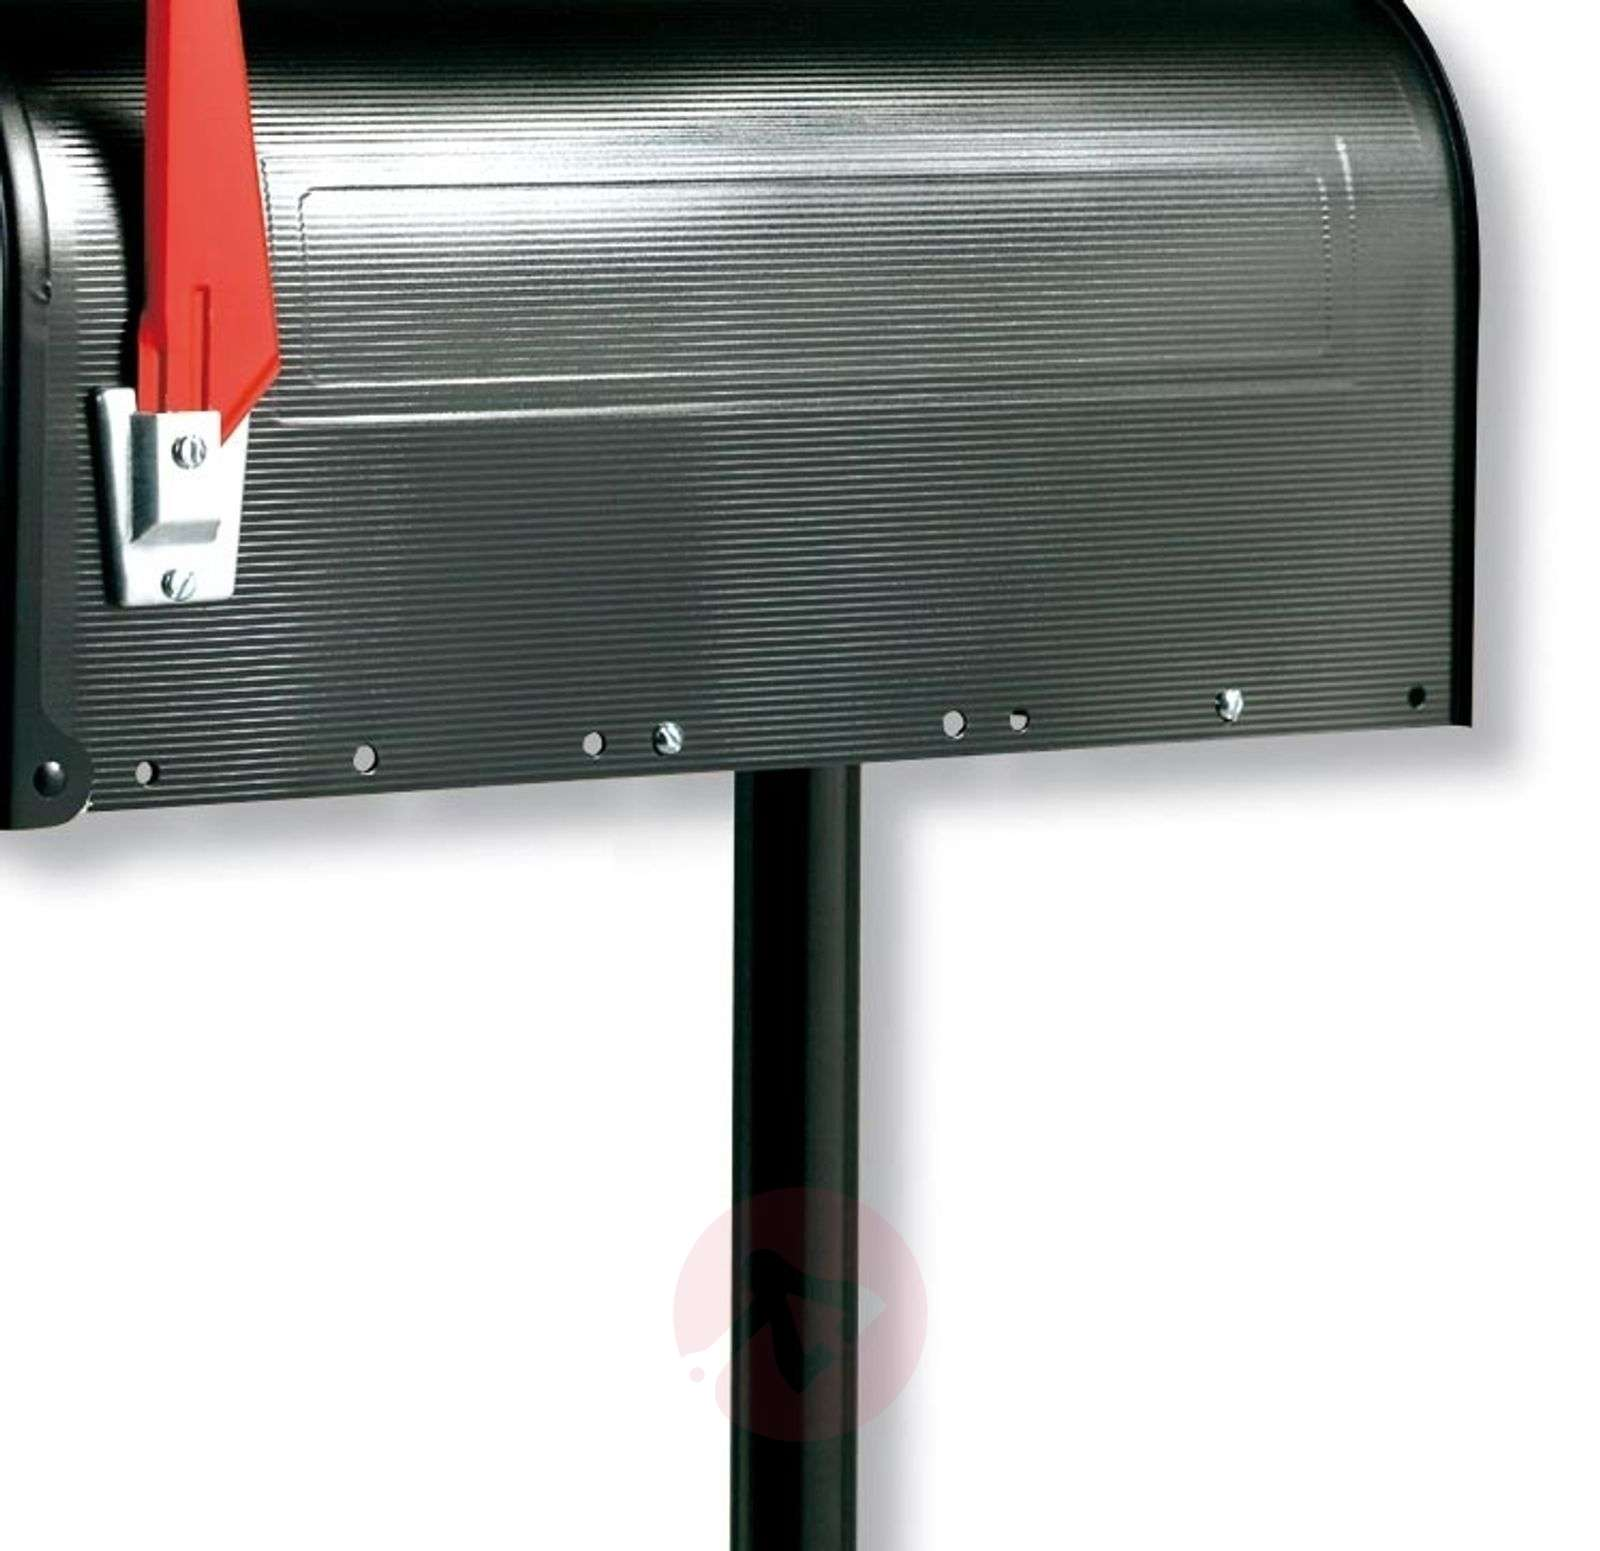 Support post 893 S for U.S. MAILBOX-1532119-01